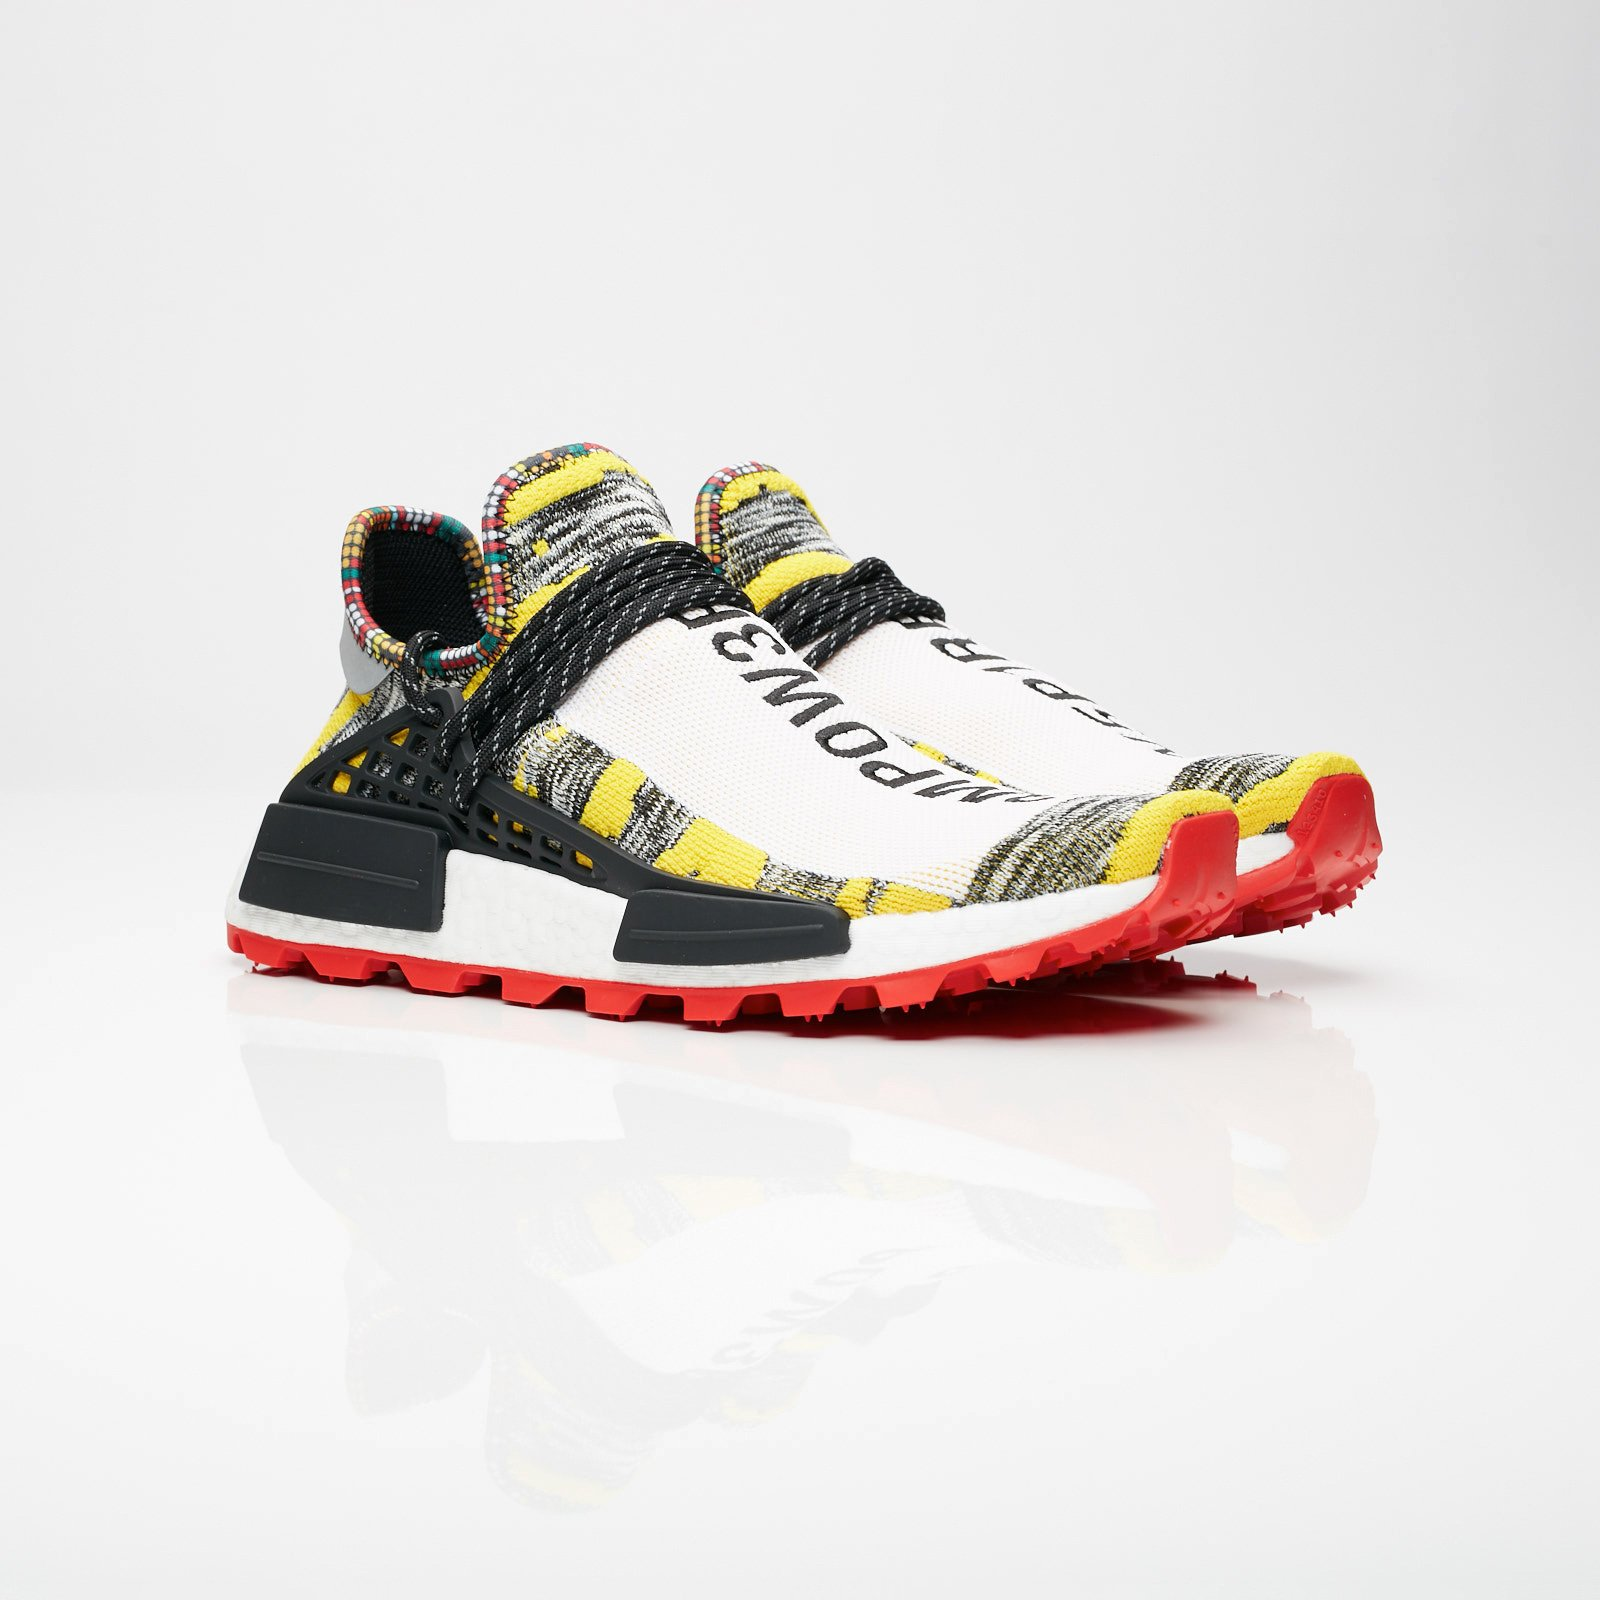 37529660bbfd adidas Solar HU NMD x Pharrell Williams - Bb9527 - Sneakersnstuff ...